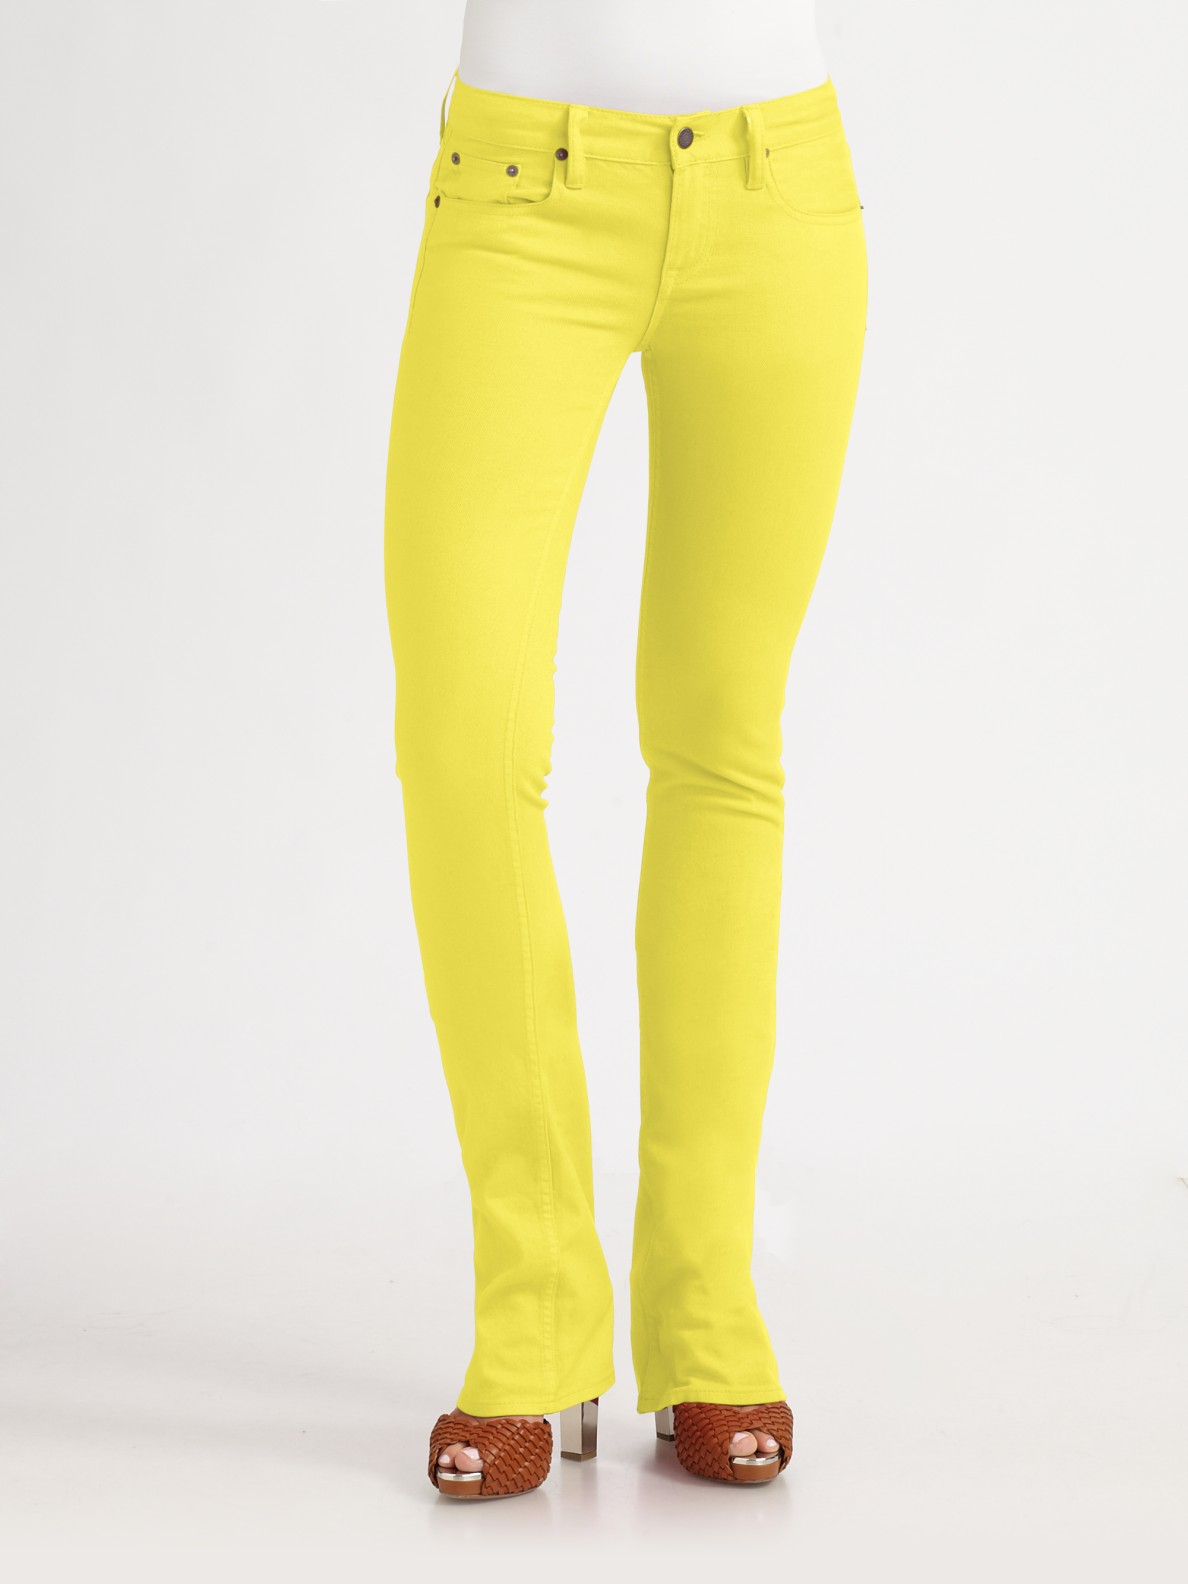 Ralph lauren blue label Stretch Slim Bootcut Jeans in Yellow | Lyst